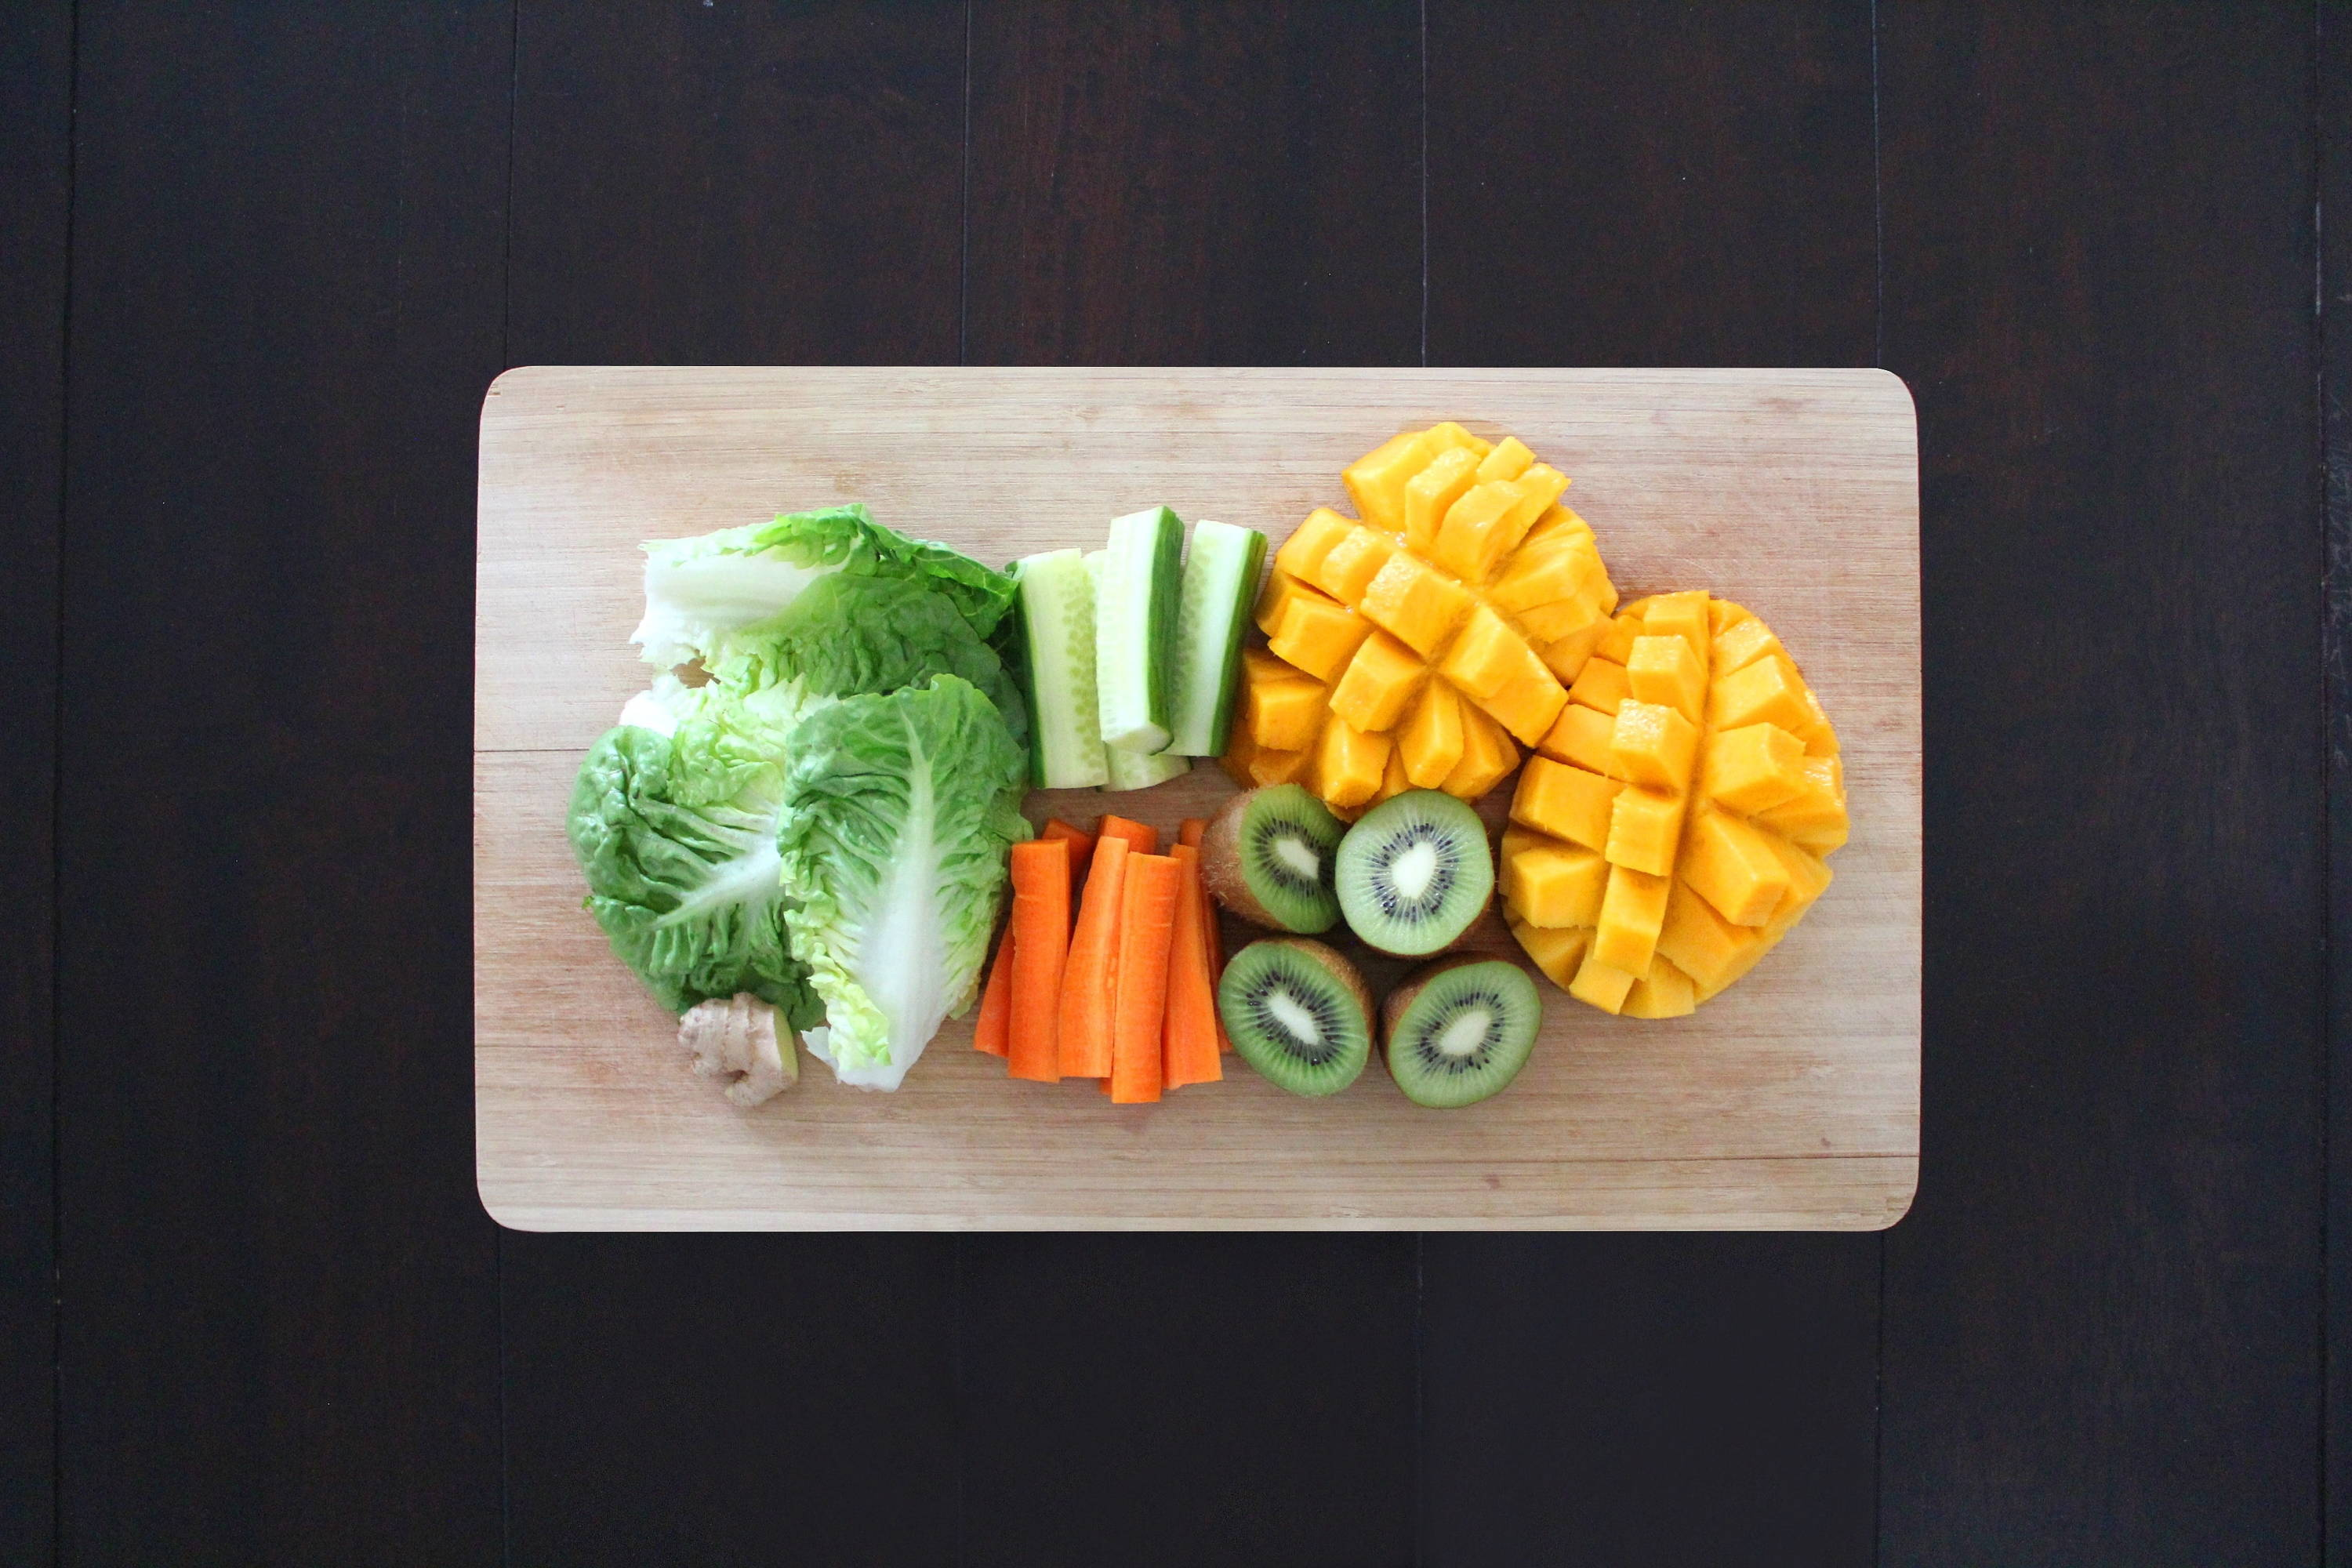 stay cool with fruits & veggies